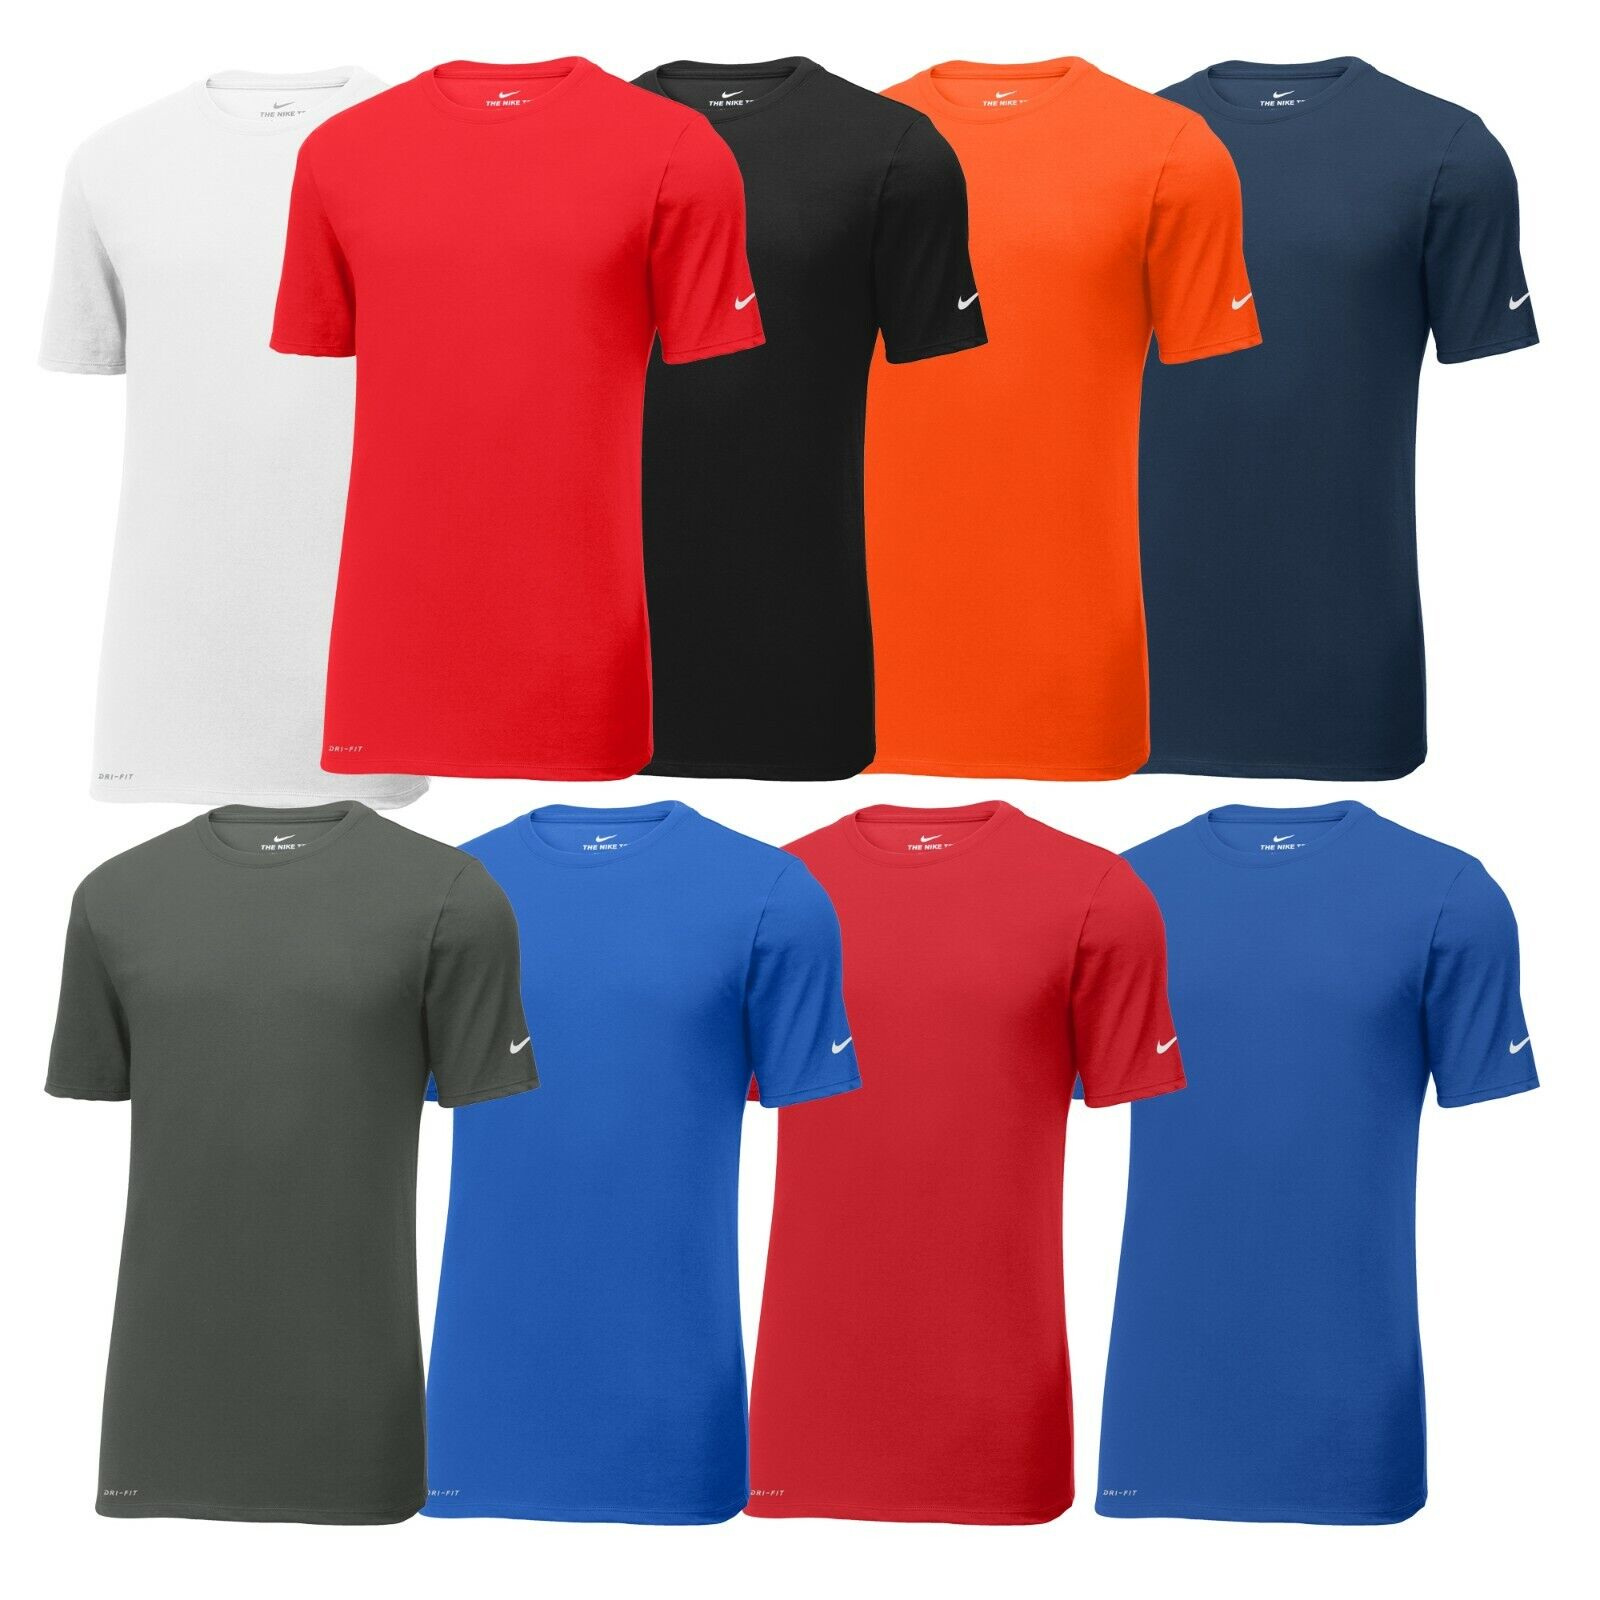 Nike Mens Dri-FIT Cotton Poly T-Shirt Short Sleeve Gym Workout Athletic Tee -New